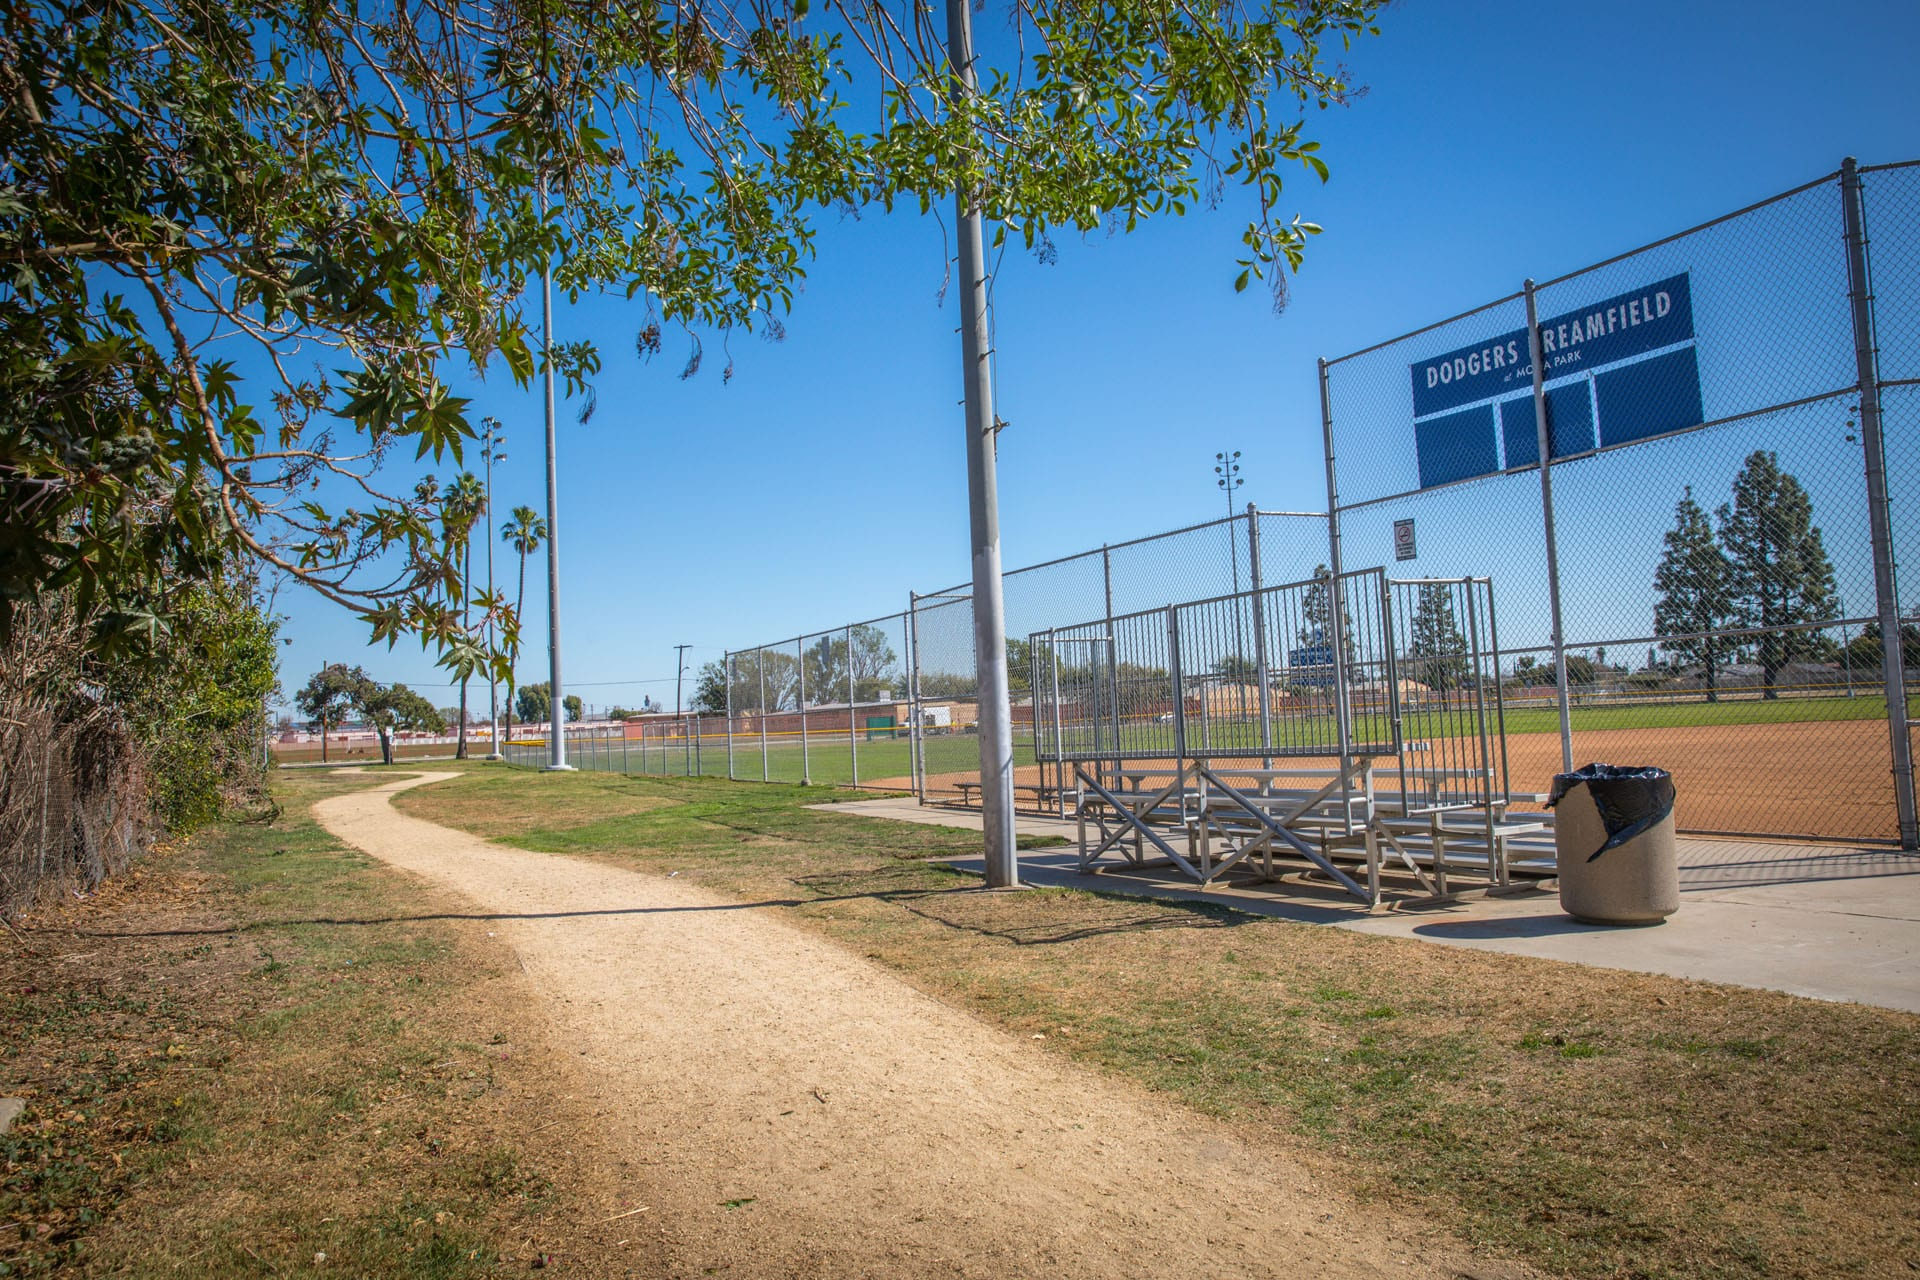 Trail running along side a baseball field